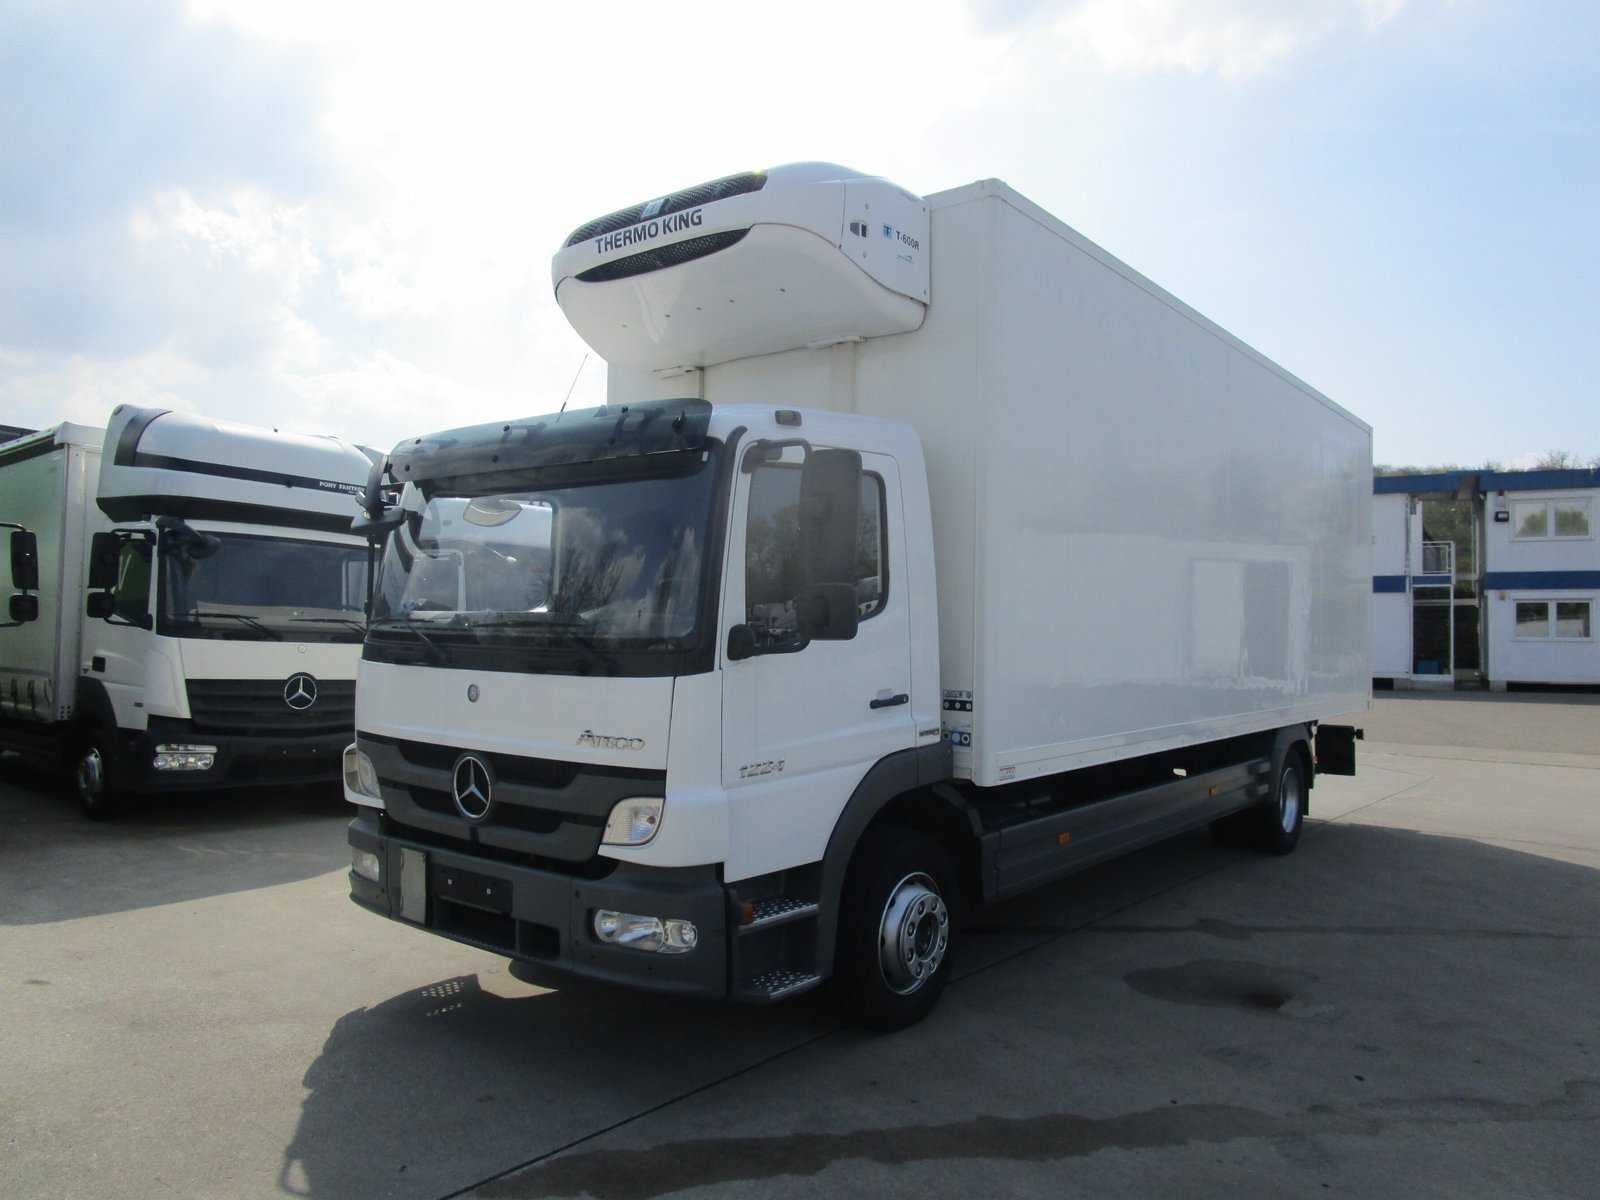 ATEGO 1224 L Kühlkoffer 7,4 m LBW 1,5*THERMOKING